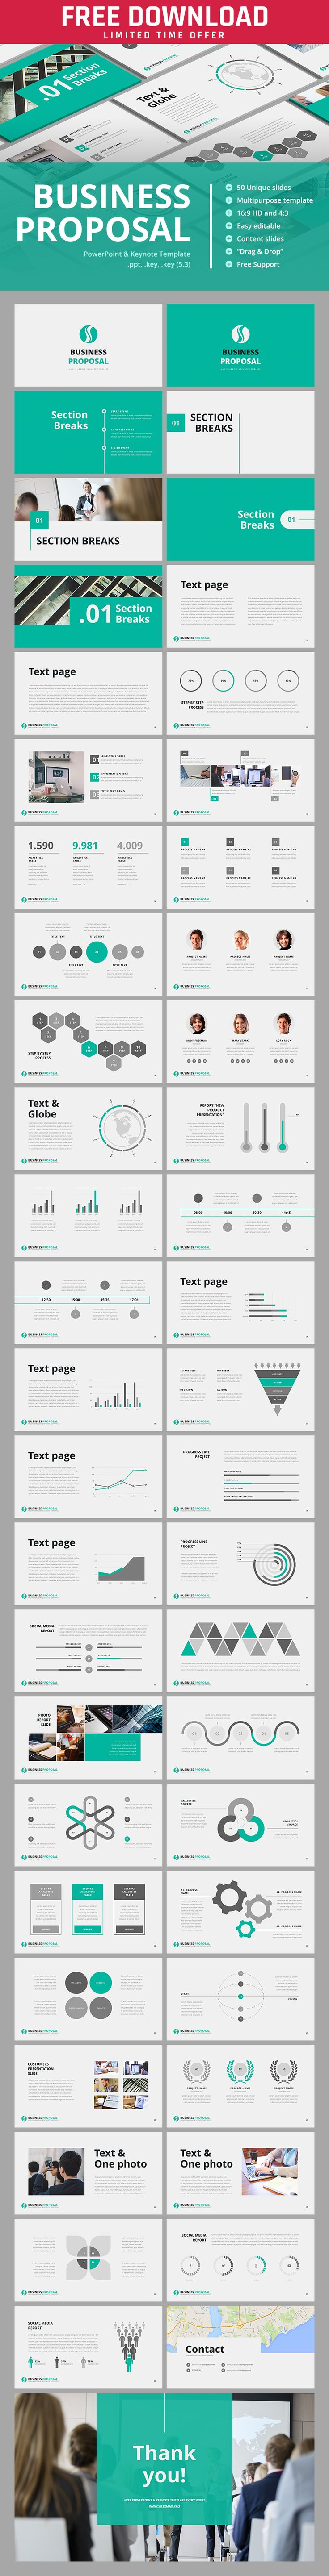 40 best free powerpoint template images on pinterest free stencils make them the business proposal they will never refuse more keynote templates toneelgroepblik Choice Image